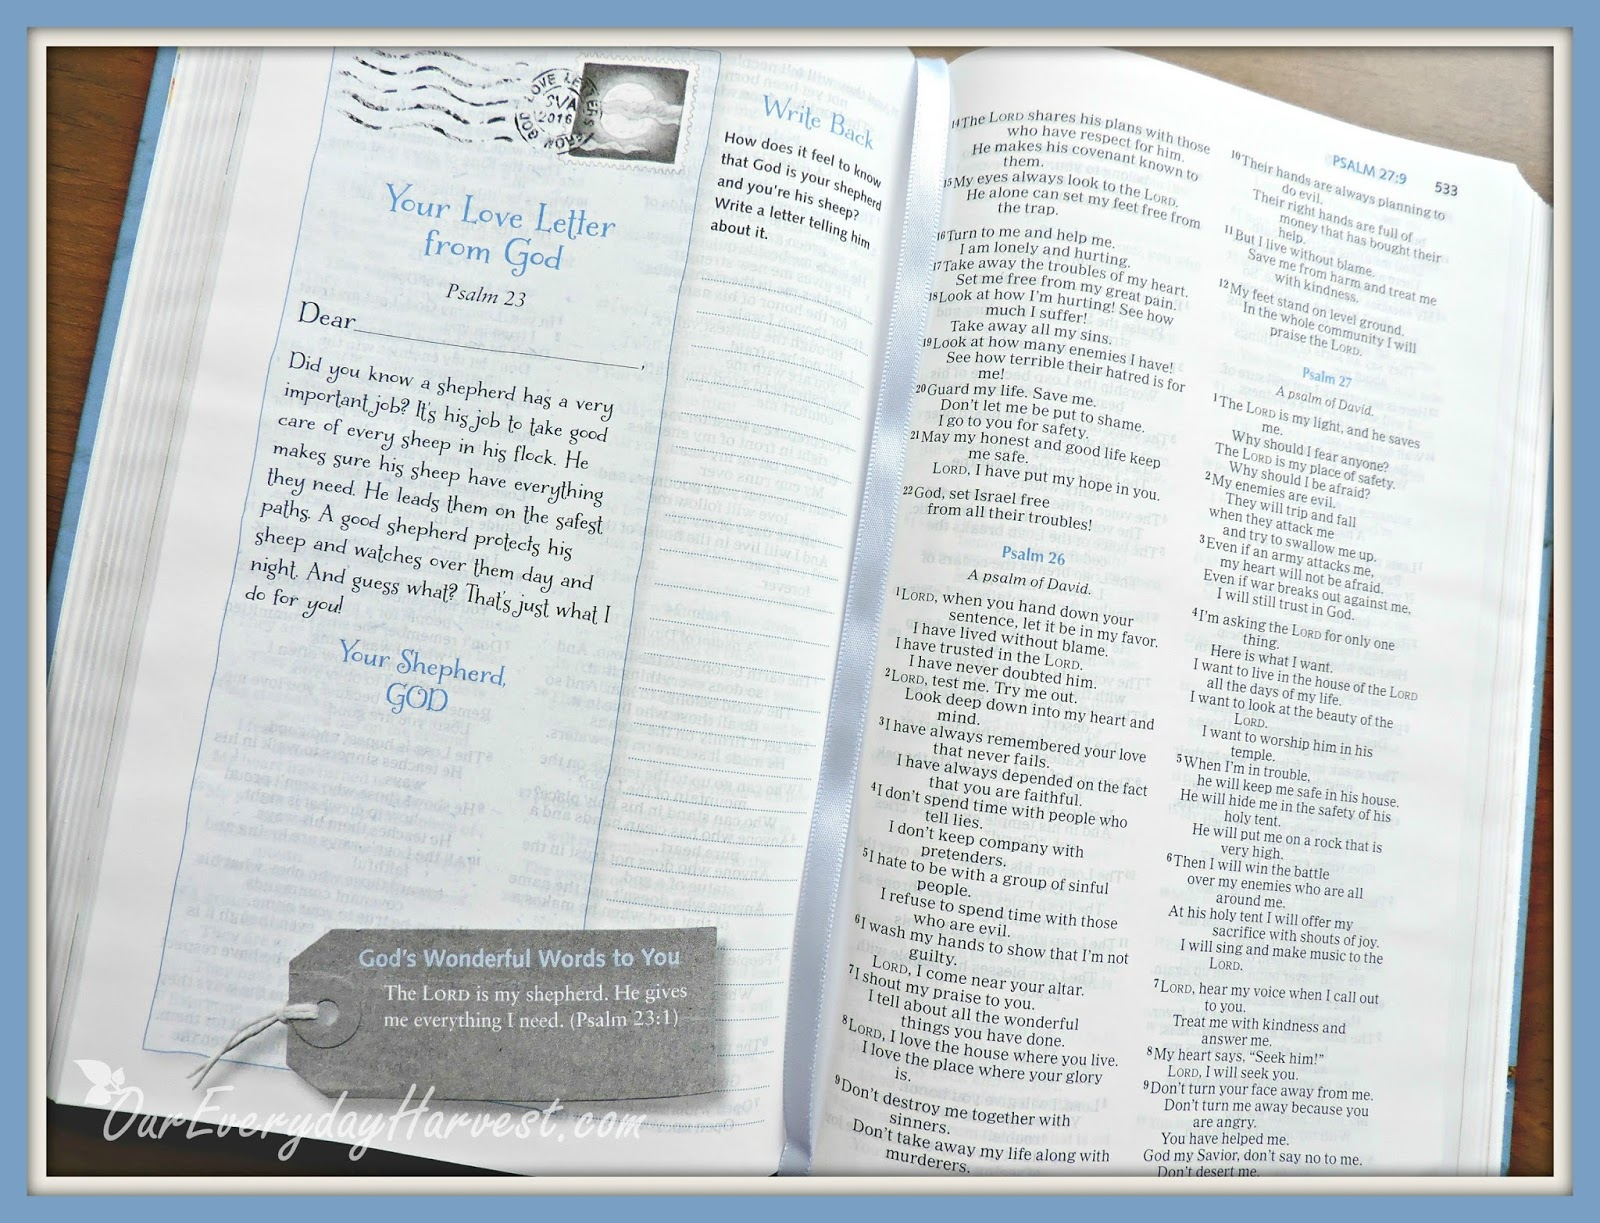 Love Letters from God Holy Bible by Glenys Nellist